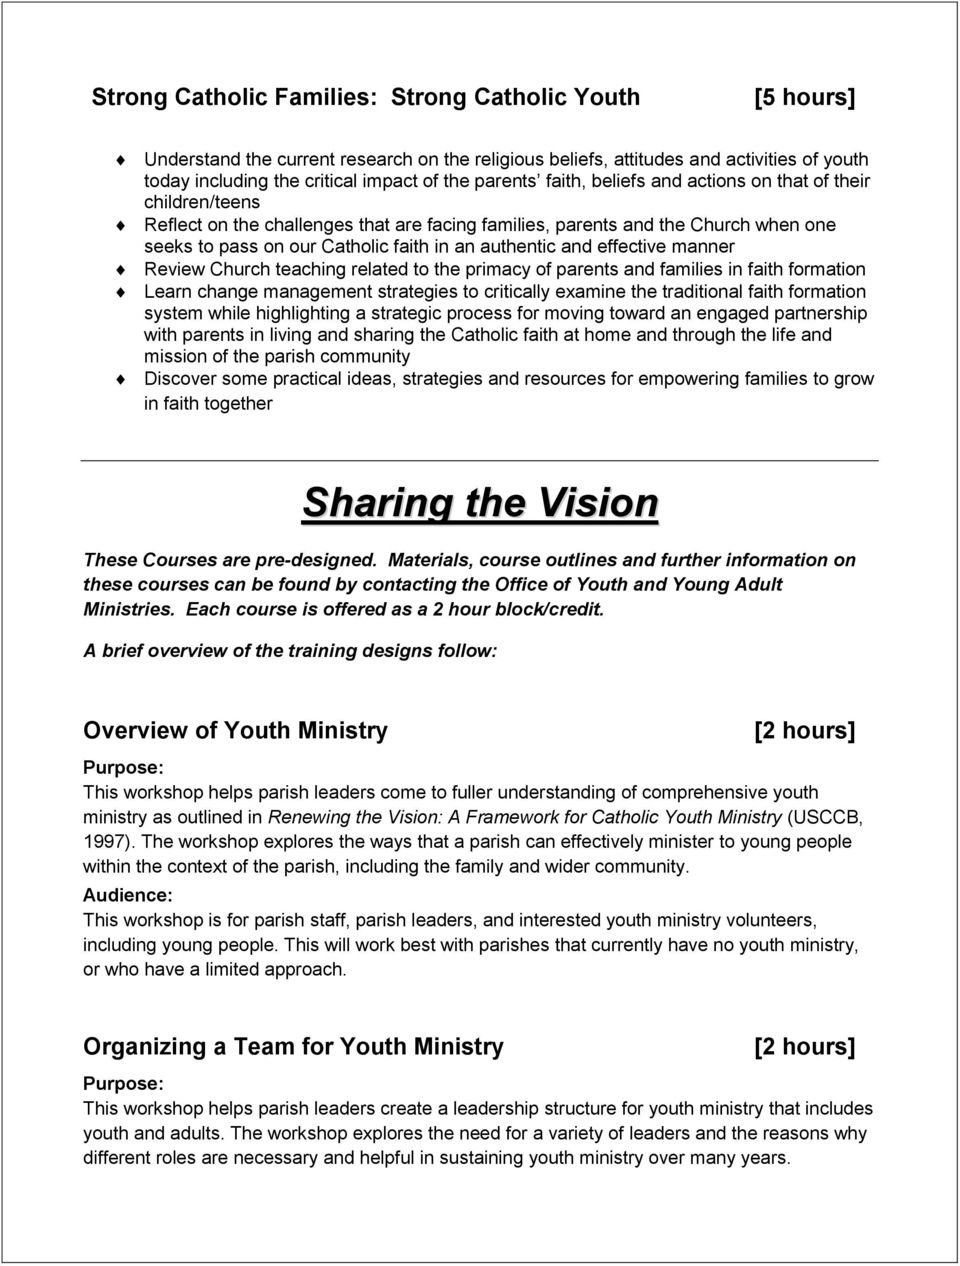 authentic and effective manner Review Church teaching related to the primacy of parents and families in faith formation Learn change management strategies to critically examine the traditional faith